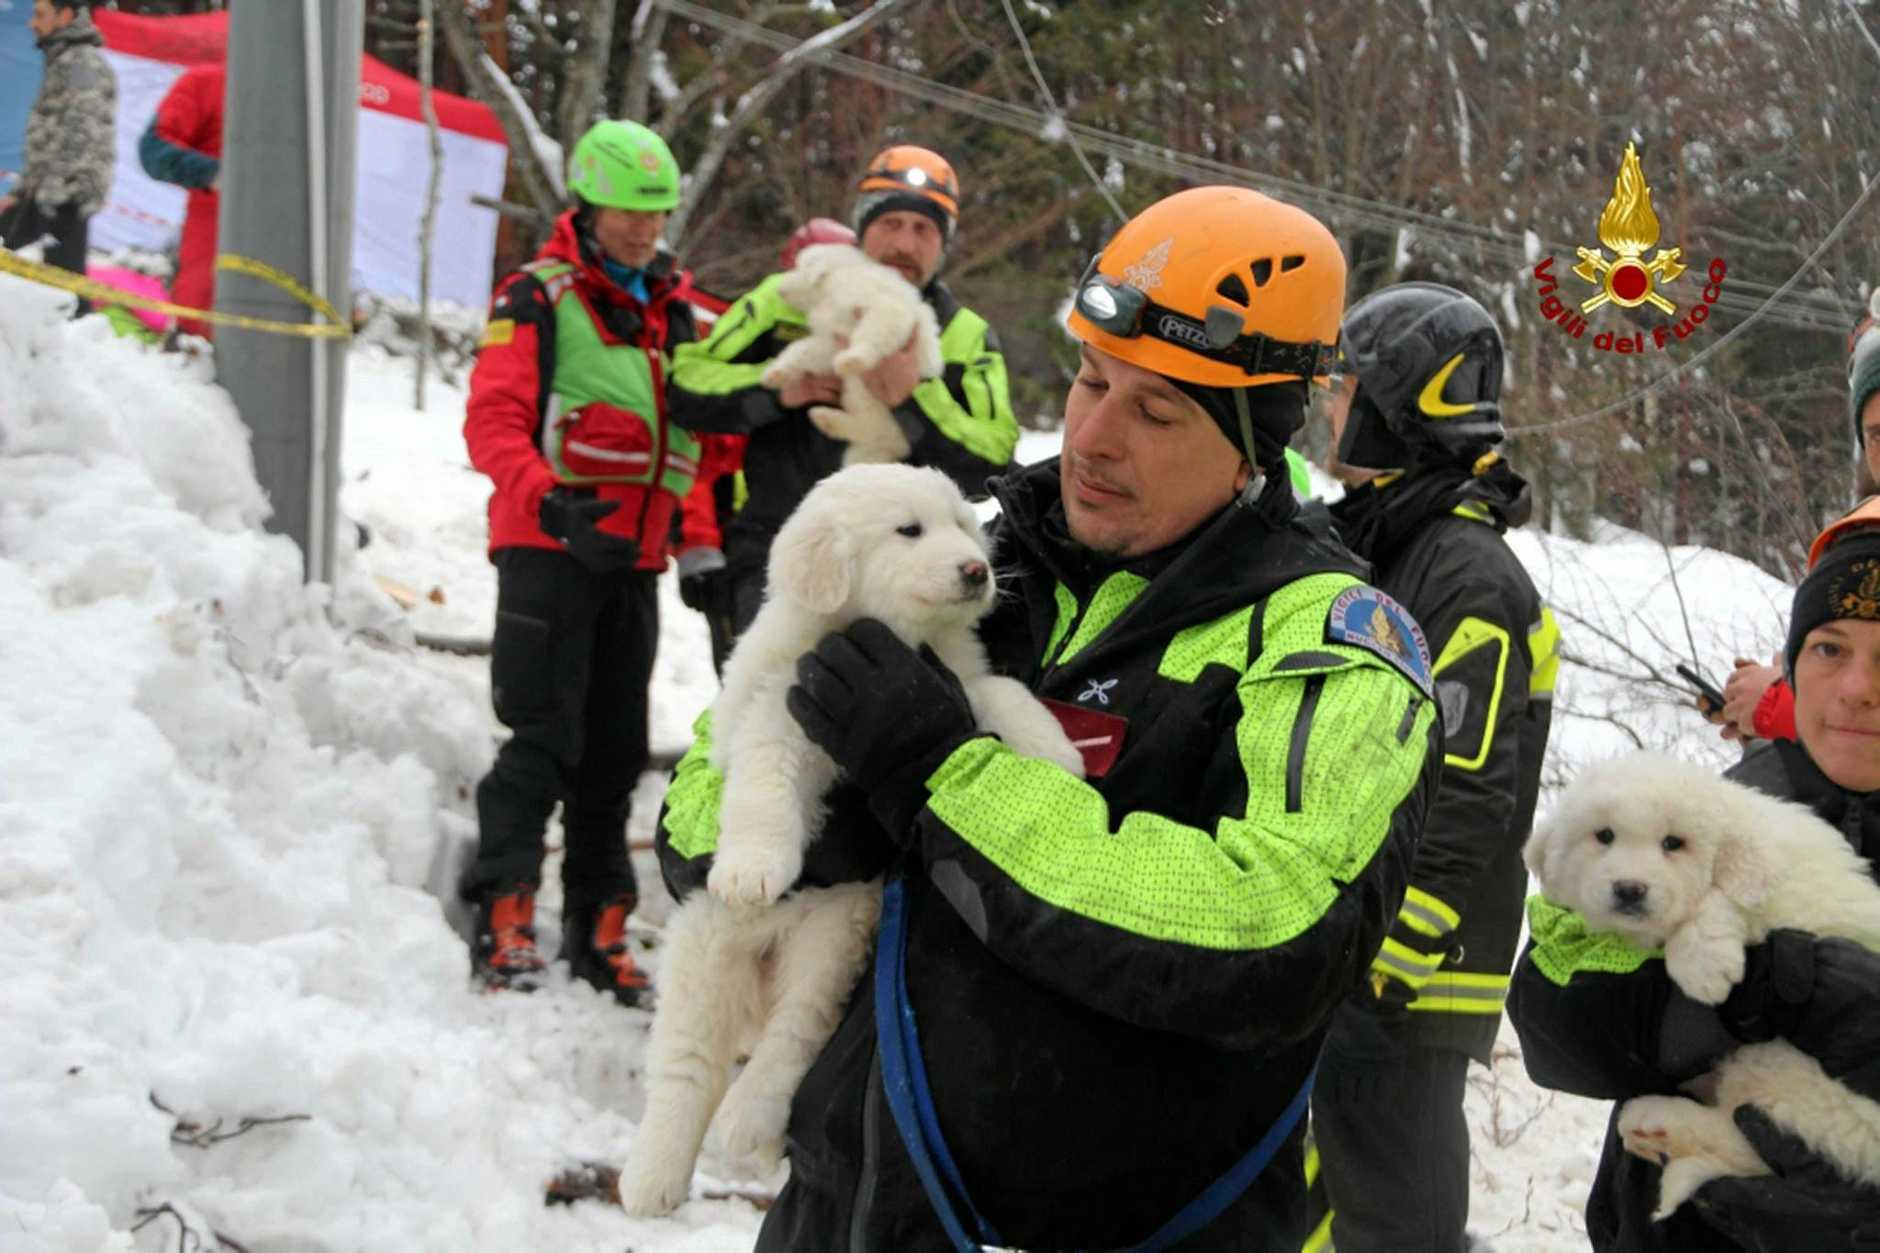 Rescue team members carry the three puppies found alive in the rubble of the avalanche-hit Rigopiano Hotel in Abruzzo, Italy. The puppies were said to be in good health after almost five days buried in freezing snow.